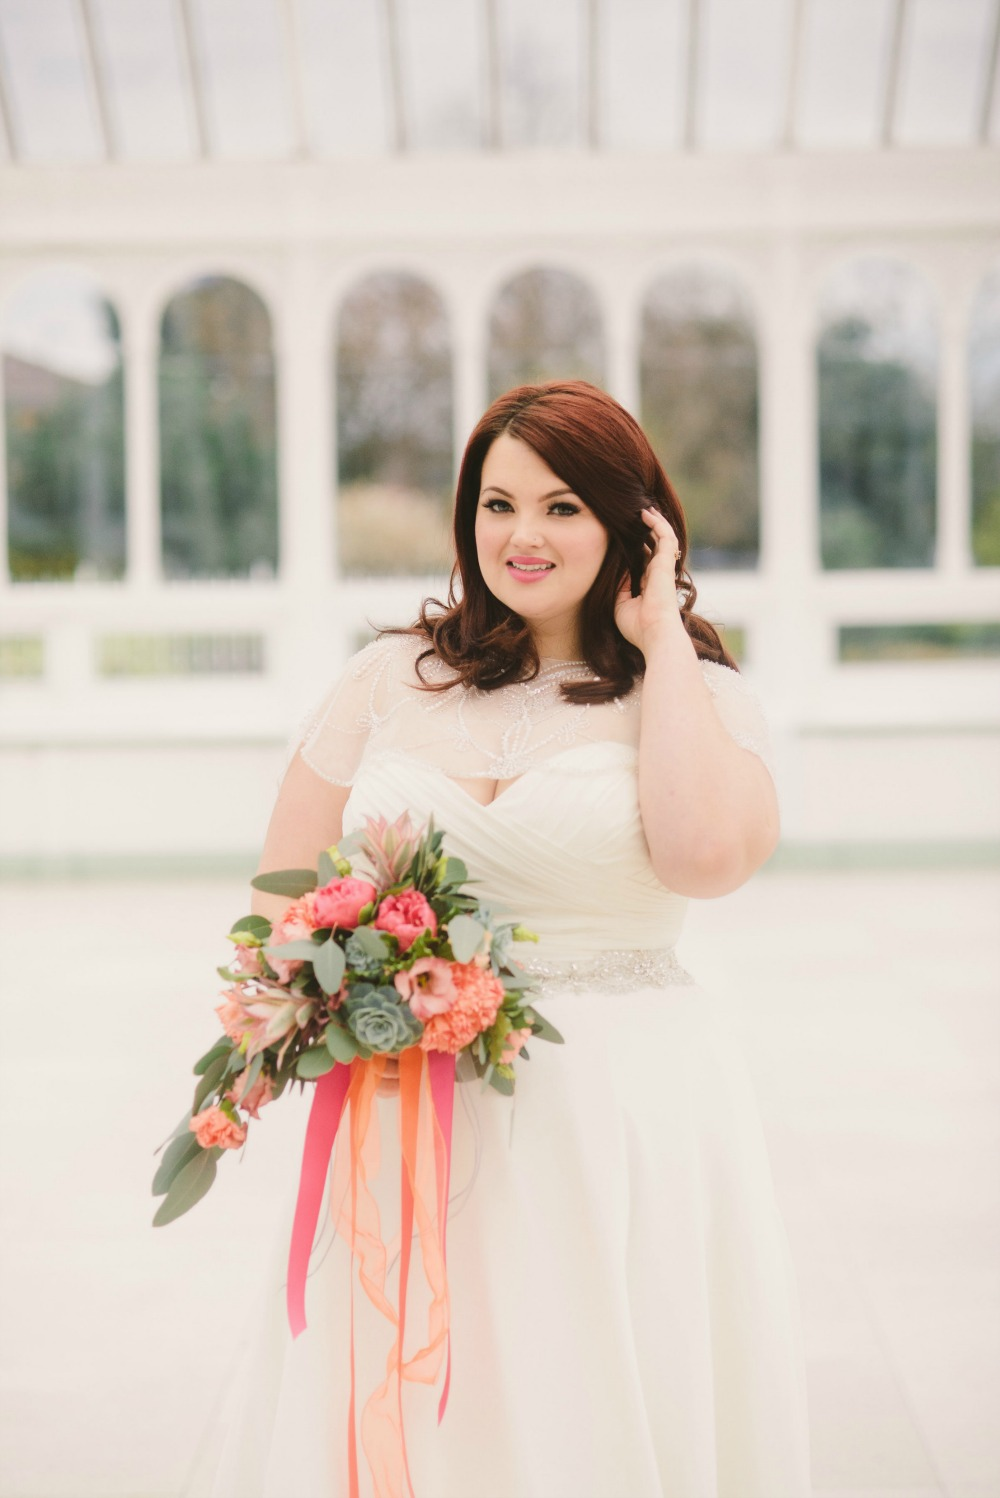 Plus size bride wedding dress peach.jpg